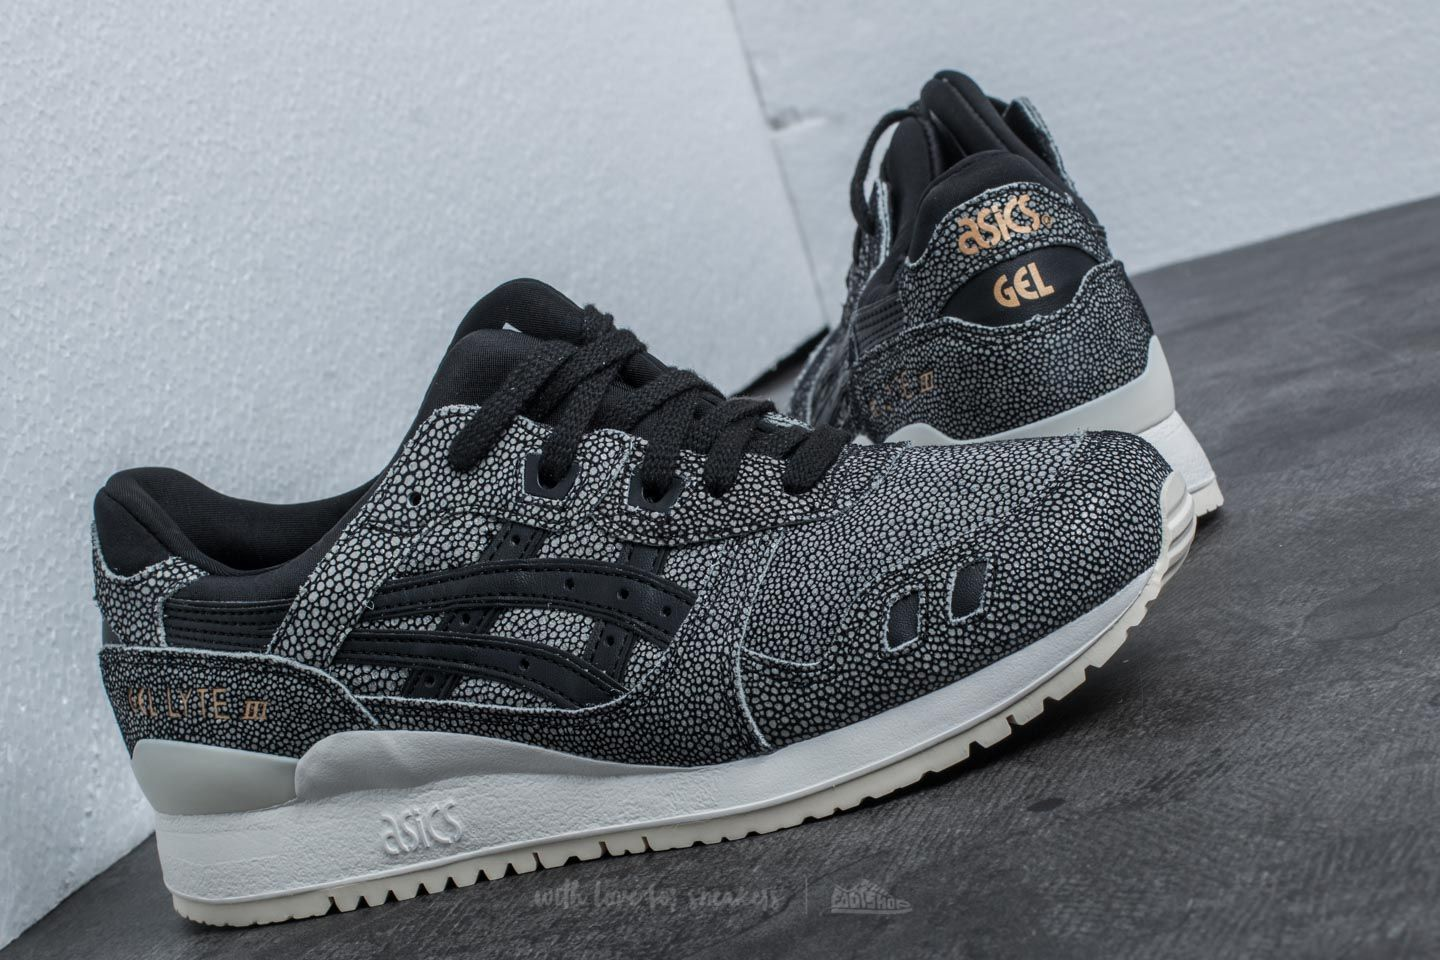 c5693894aa373 ... order asics gel lyte iii black black at a great price 77 buy at 9c610  145c9